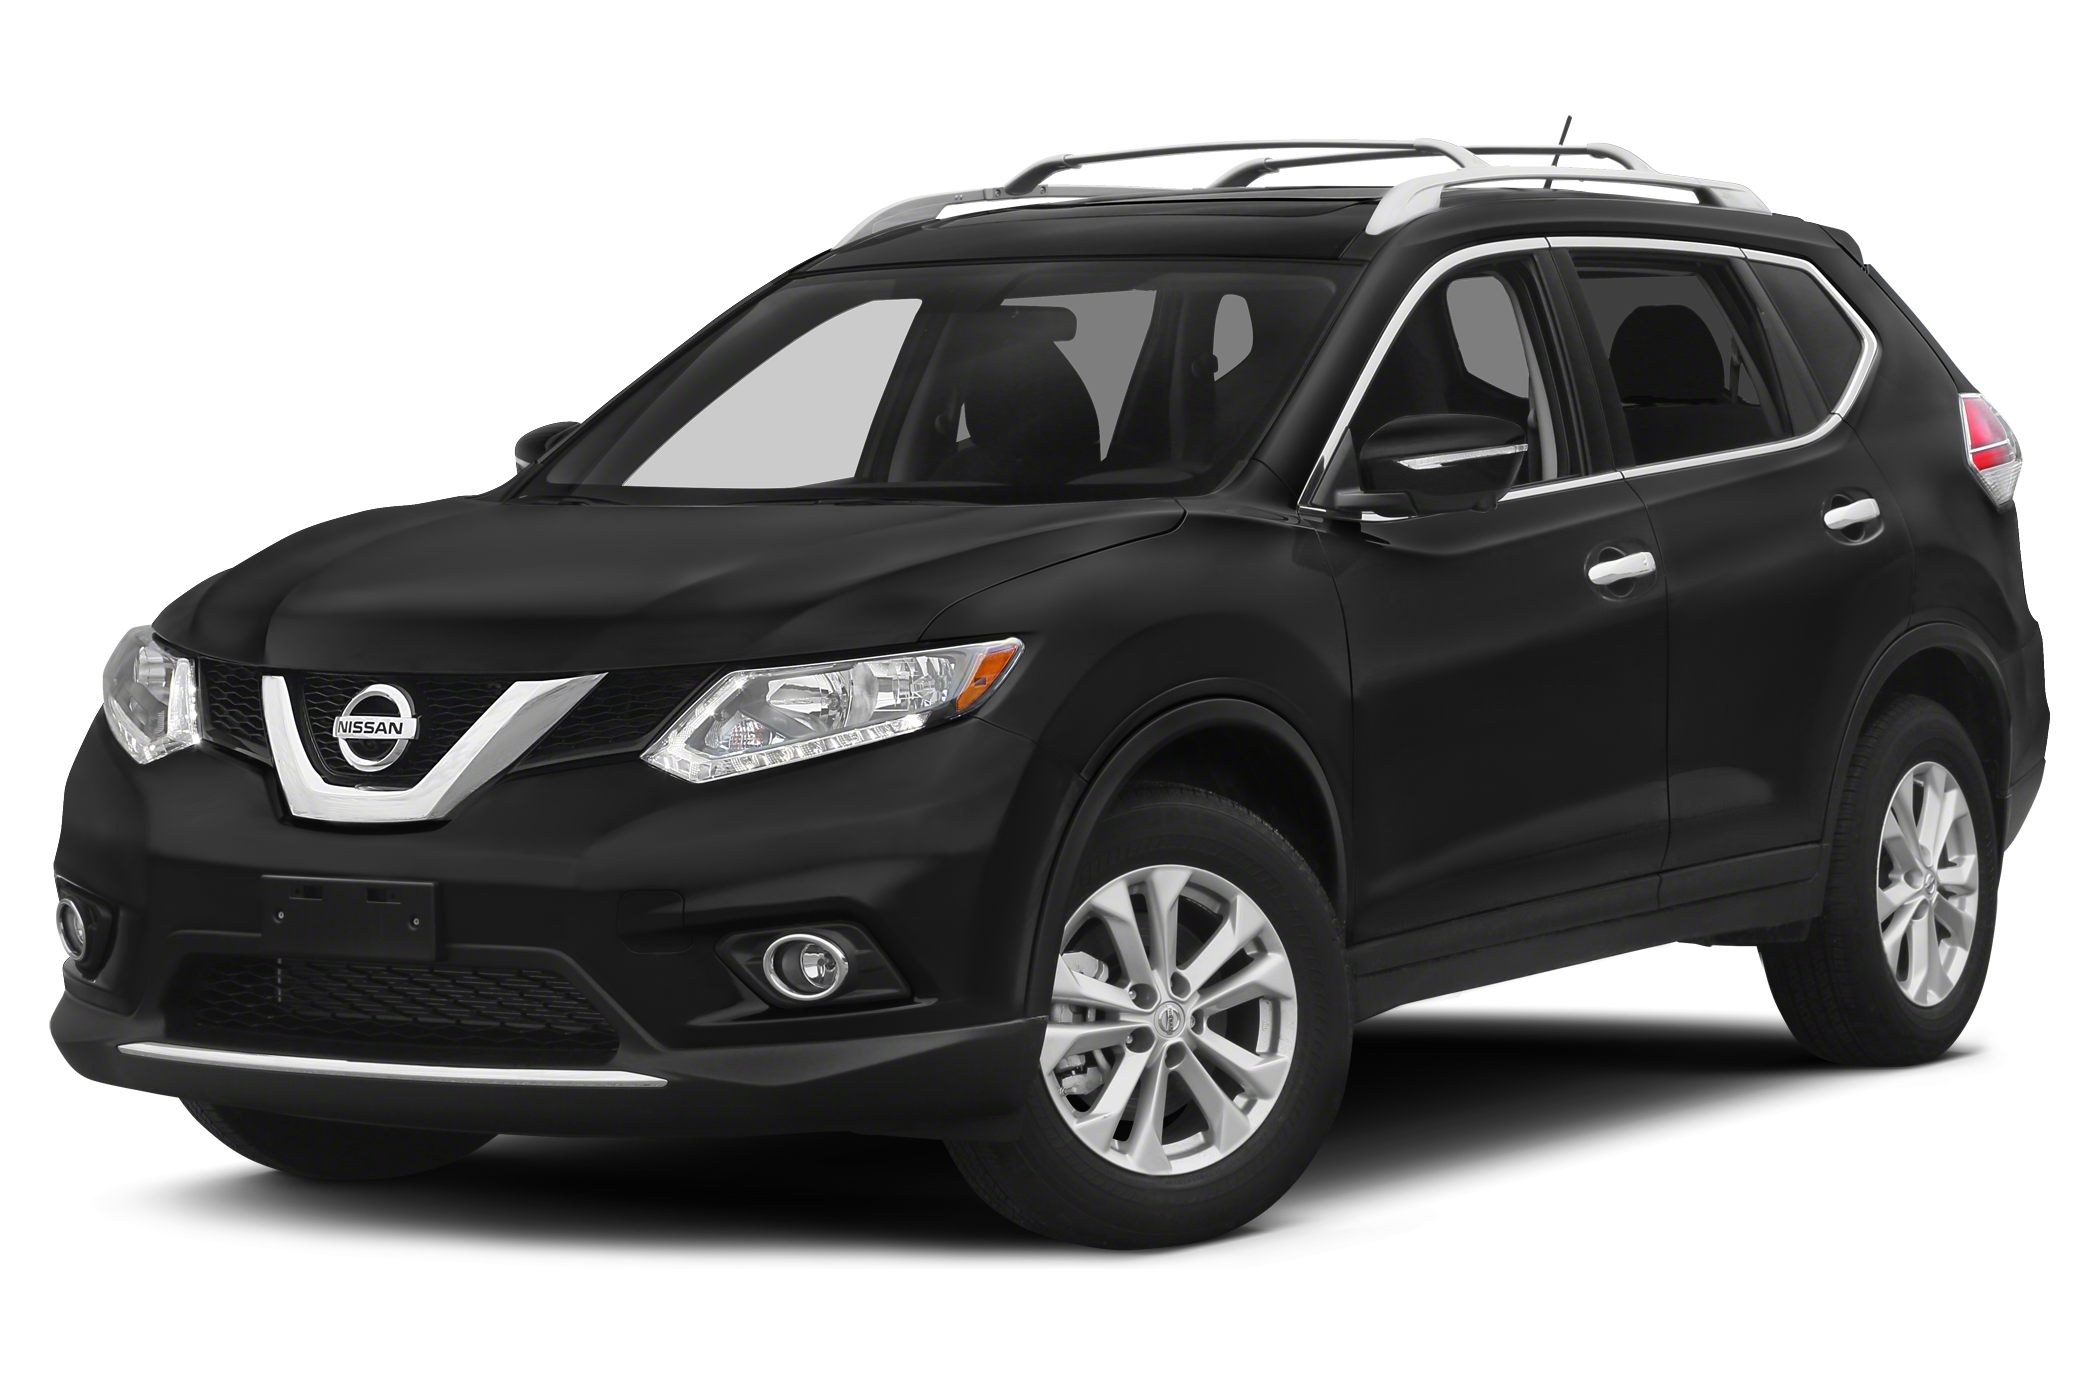 2015 Nissan Rogue SL SUV for sale in Greenville for $26,902 with 10 miles.